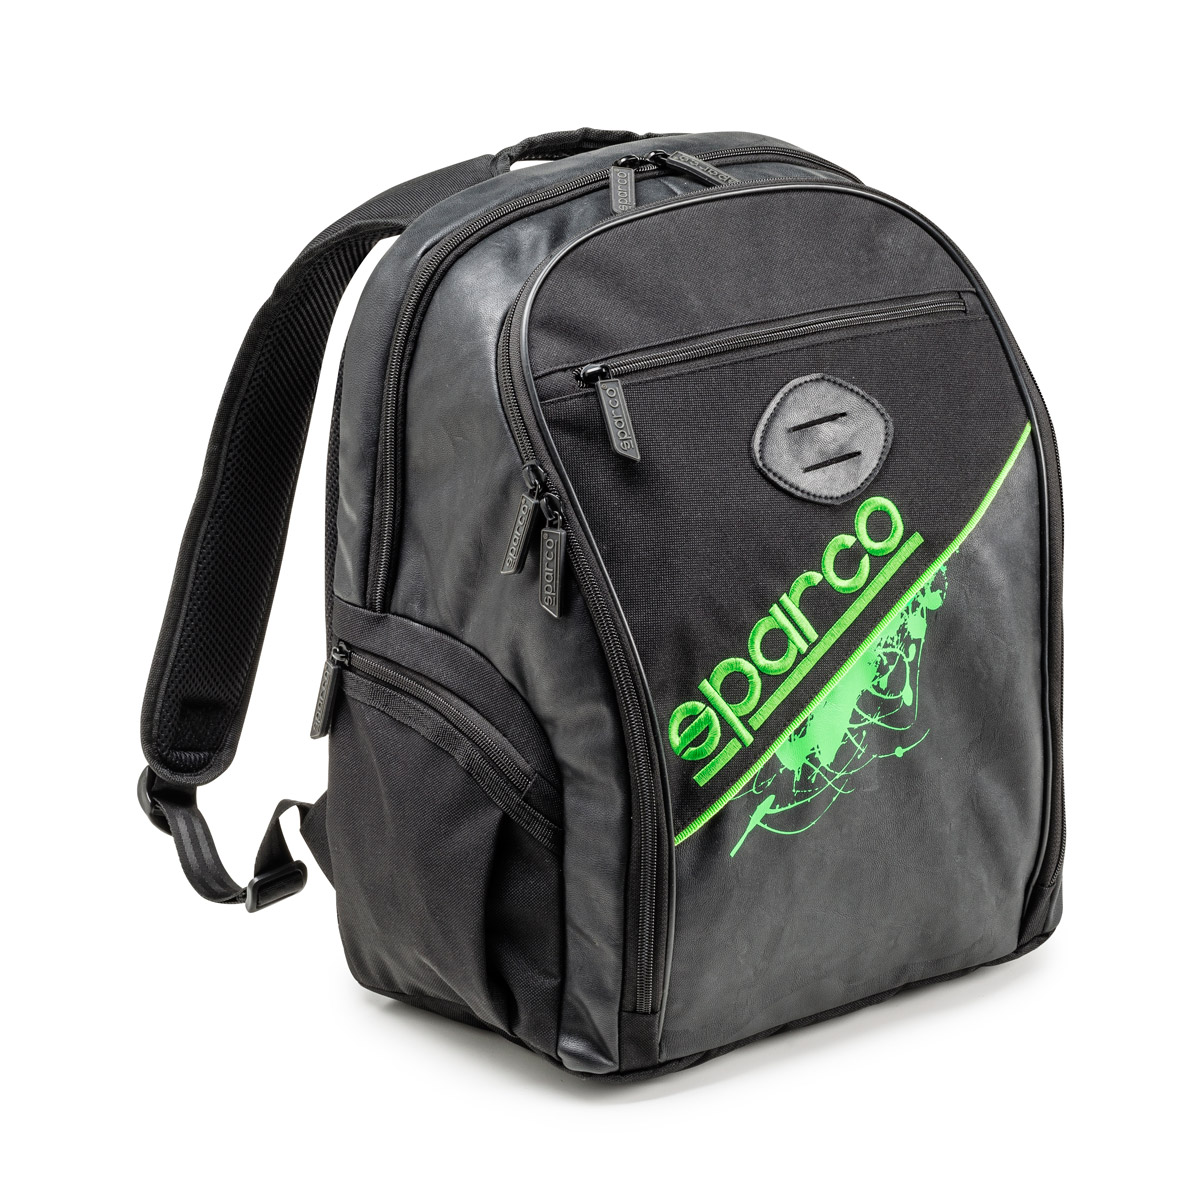 New Sparco Stars Bag